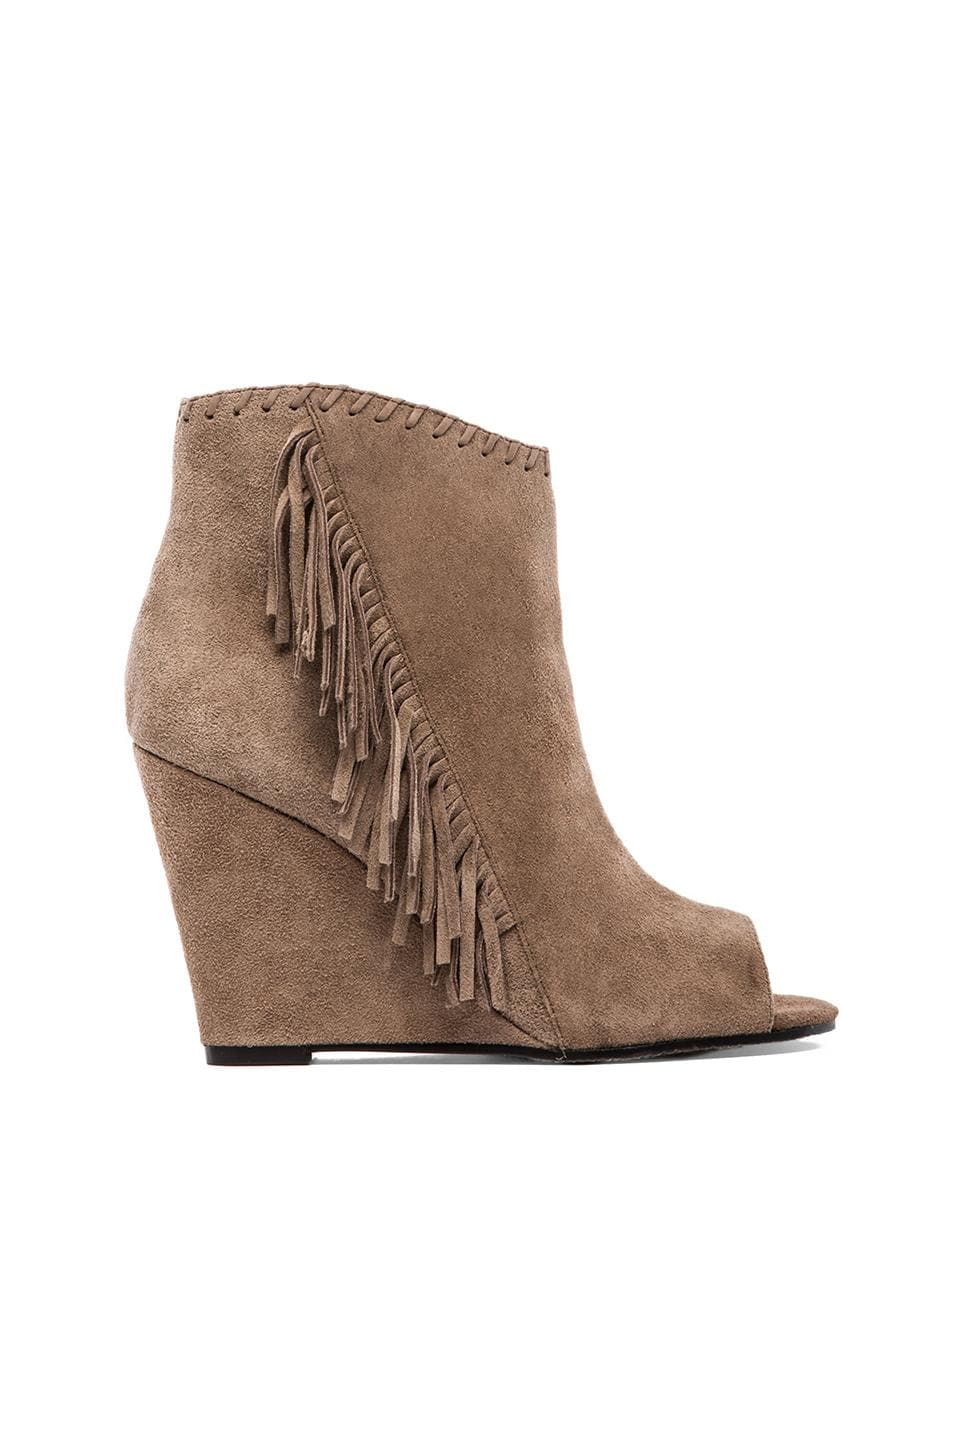 Vince Camuto Tecca Fringe Bootie in Smoke Taupe